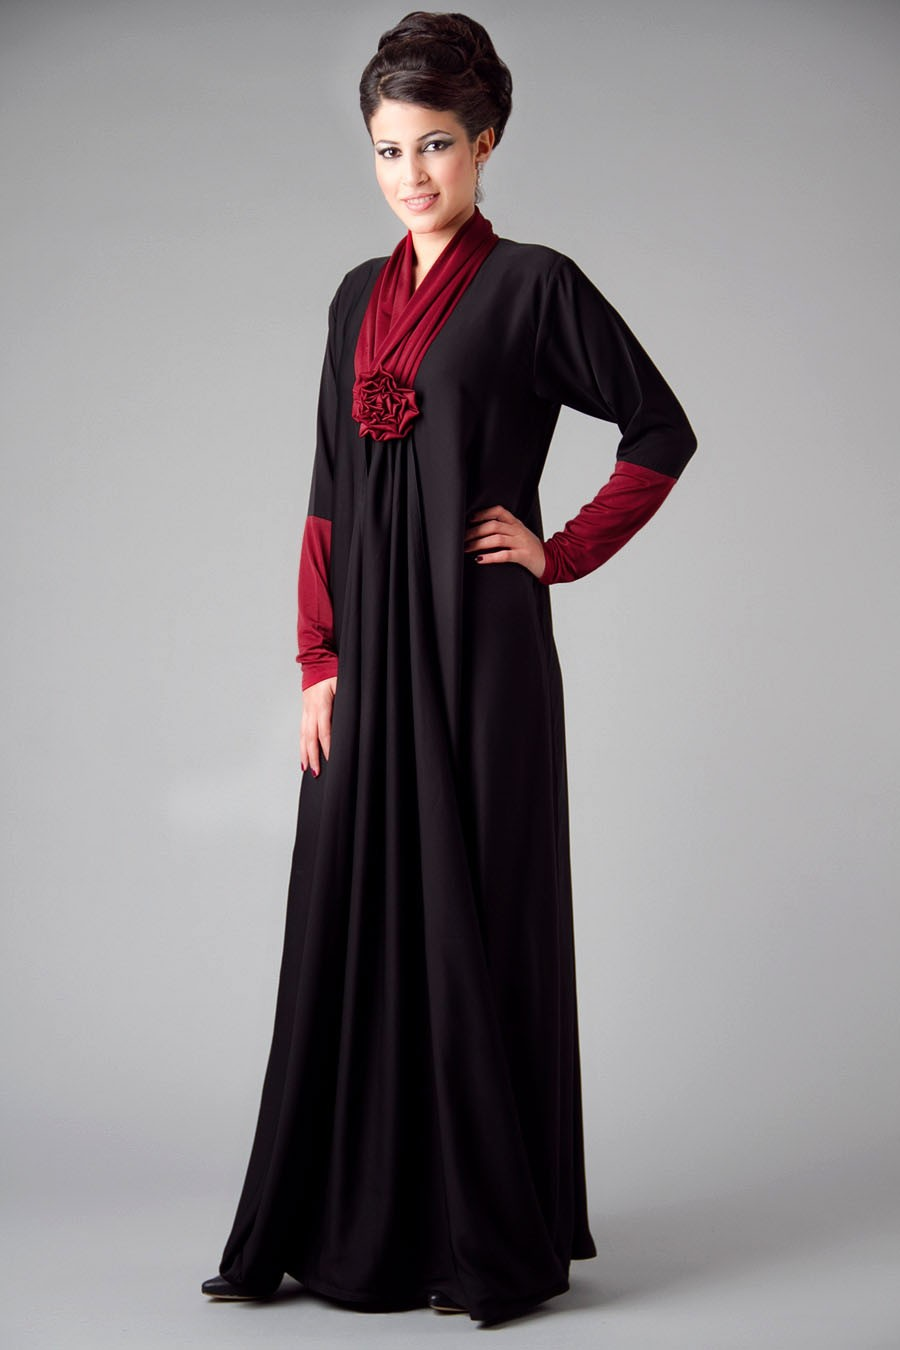 Embroidered Abaya Designs 2013 Islamic Abaya Dress Fashion 2013 14 New Fresh Fashion